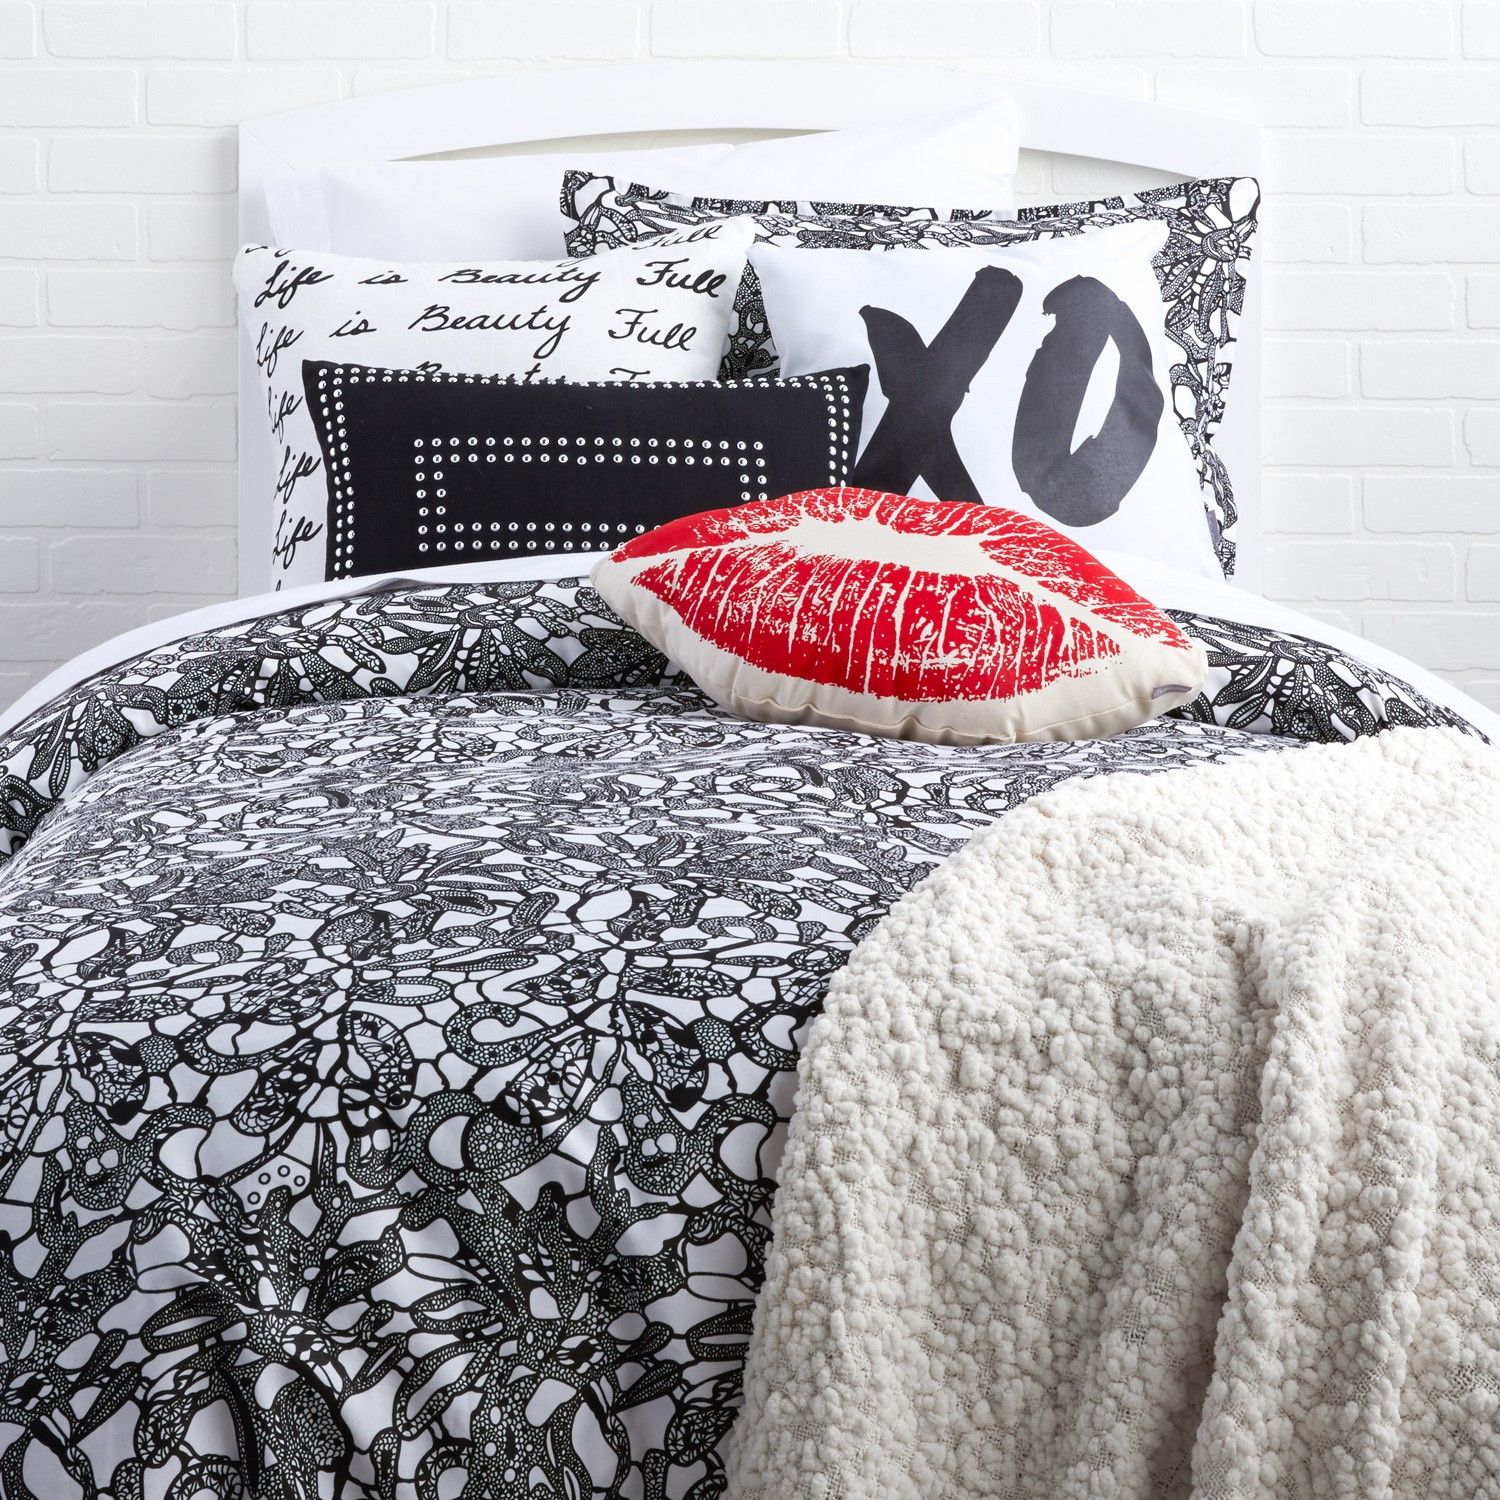 Red Romance Collection | House Inspo | Pinterest | Dorm bedding sets on red and black bedroom curtains, red and black paris themed bedroom, gold white and black bedroom decor, red white black decorations, cream and black bedroom decor, red and black painted bedroom, red and black bedroom ideas for couples, brown and black bedroom decor, black and red abstract wall decor, red and black room, fun bedroom decor, black white red wall decor, sexy bedroom decor,